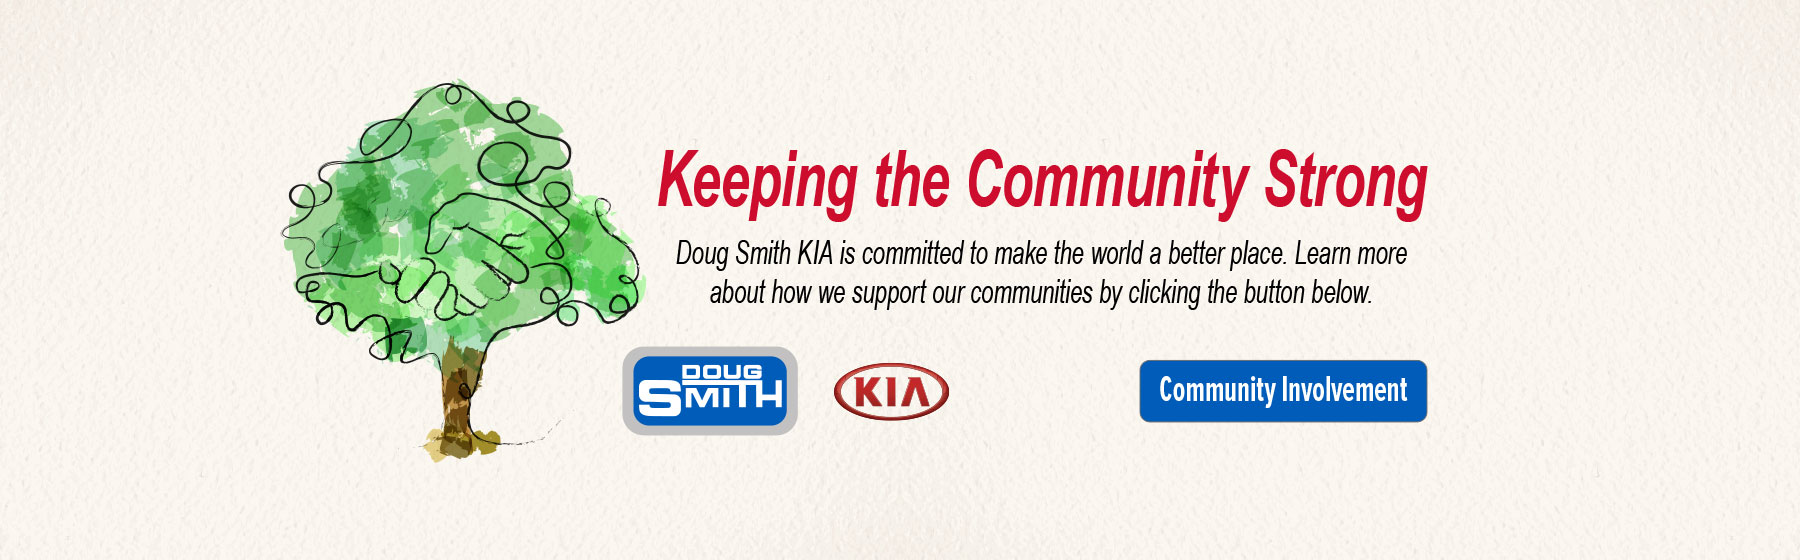 Doug Smith Kia Supports our Communities